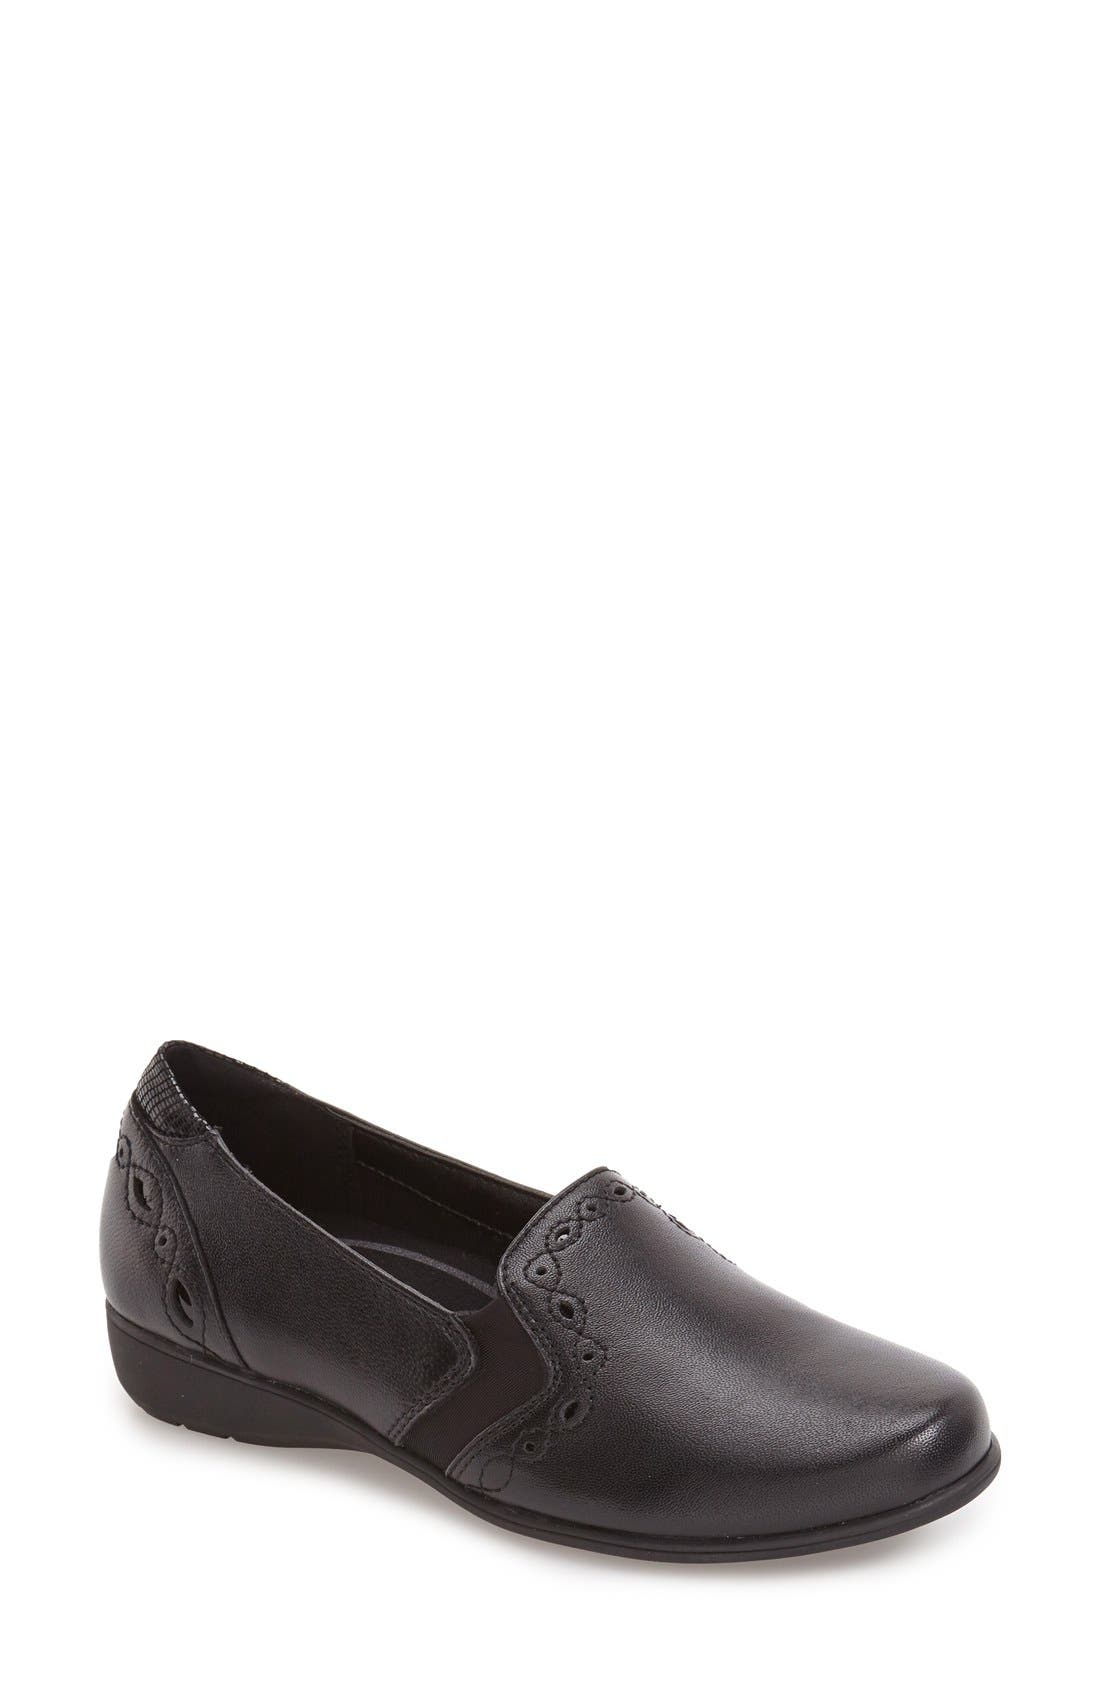 'Adalyn' Loafer,                             Main thumbnail 1, color,                             BLACK LEATHER